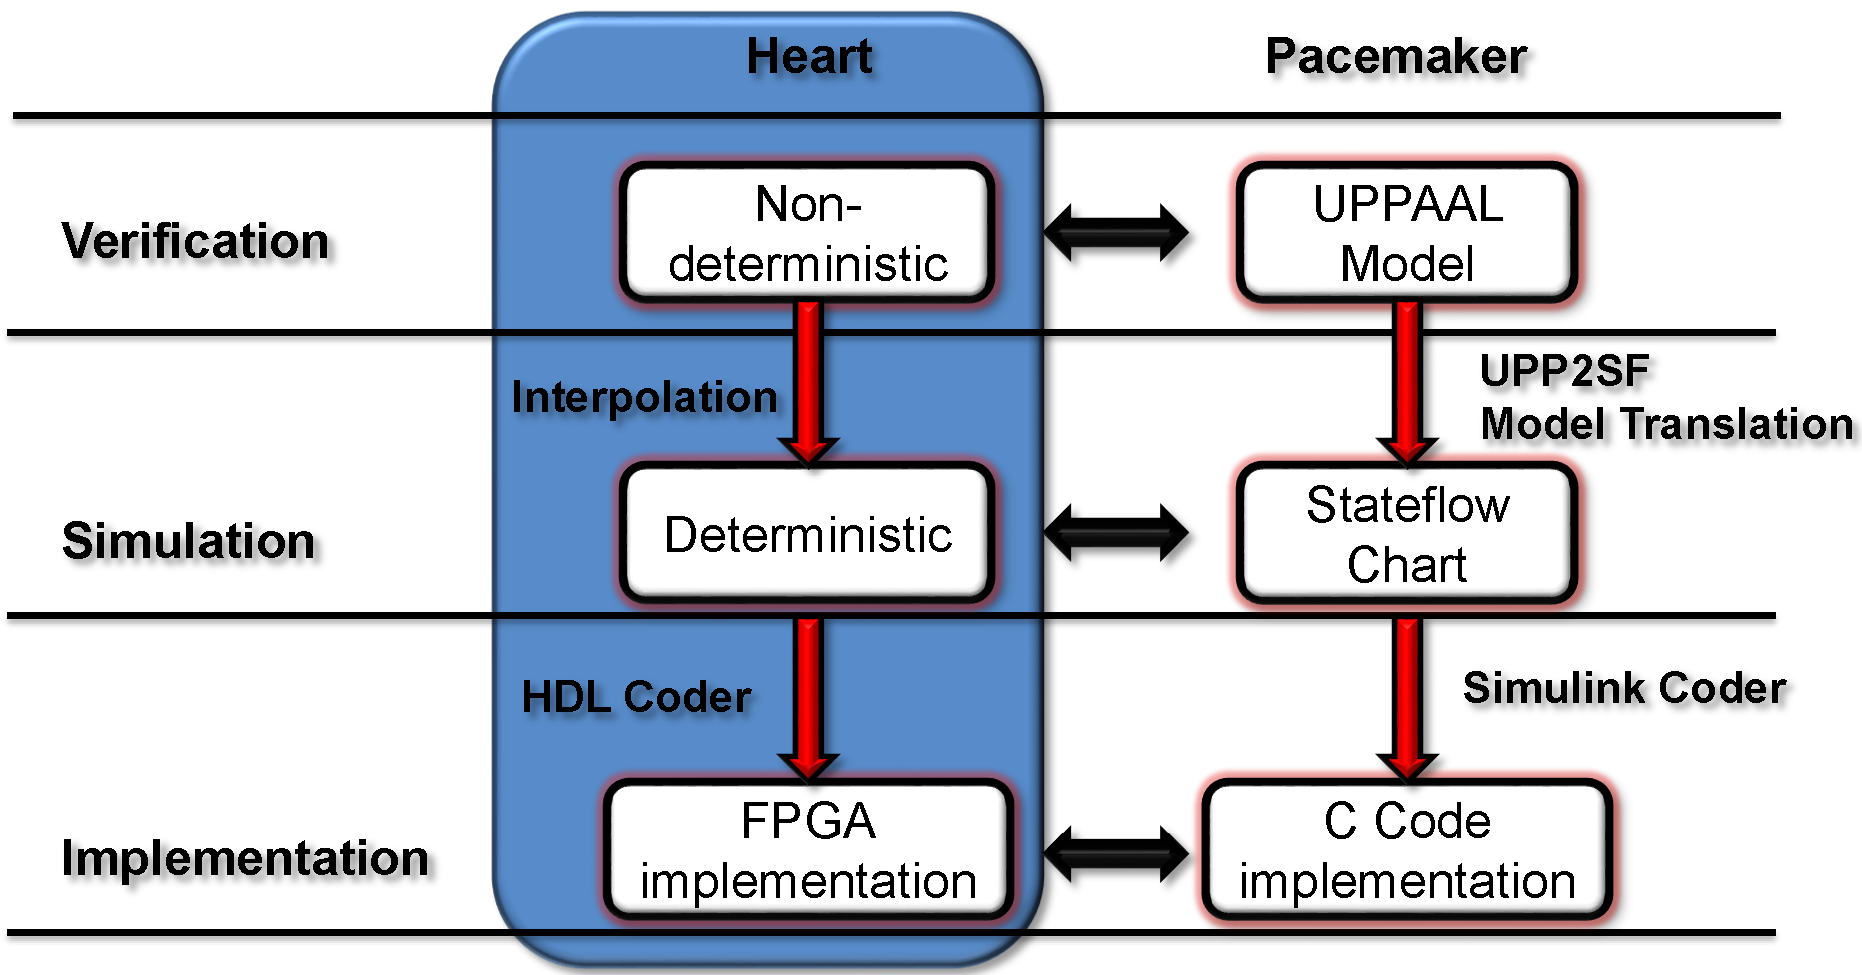 Heart Modeling Medical Cps Is There Anyway I Can Model This Simple Circuit In Matlab And A Structure Was Designed Based On The Electrophysiology Of At Each Development Stage Version